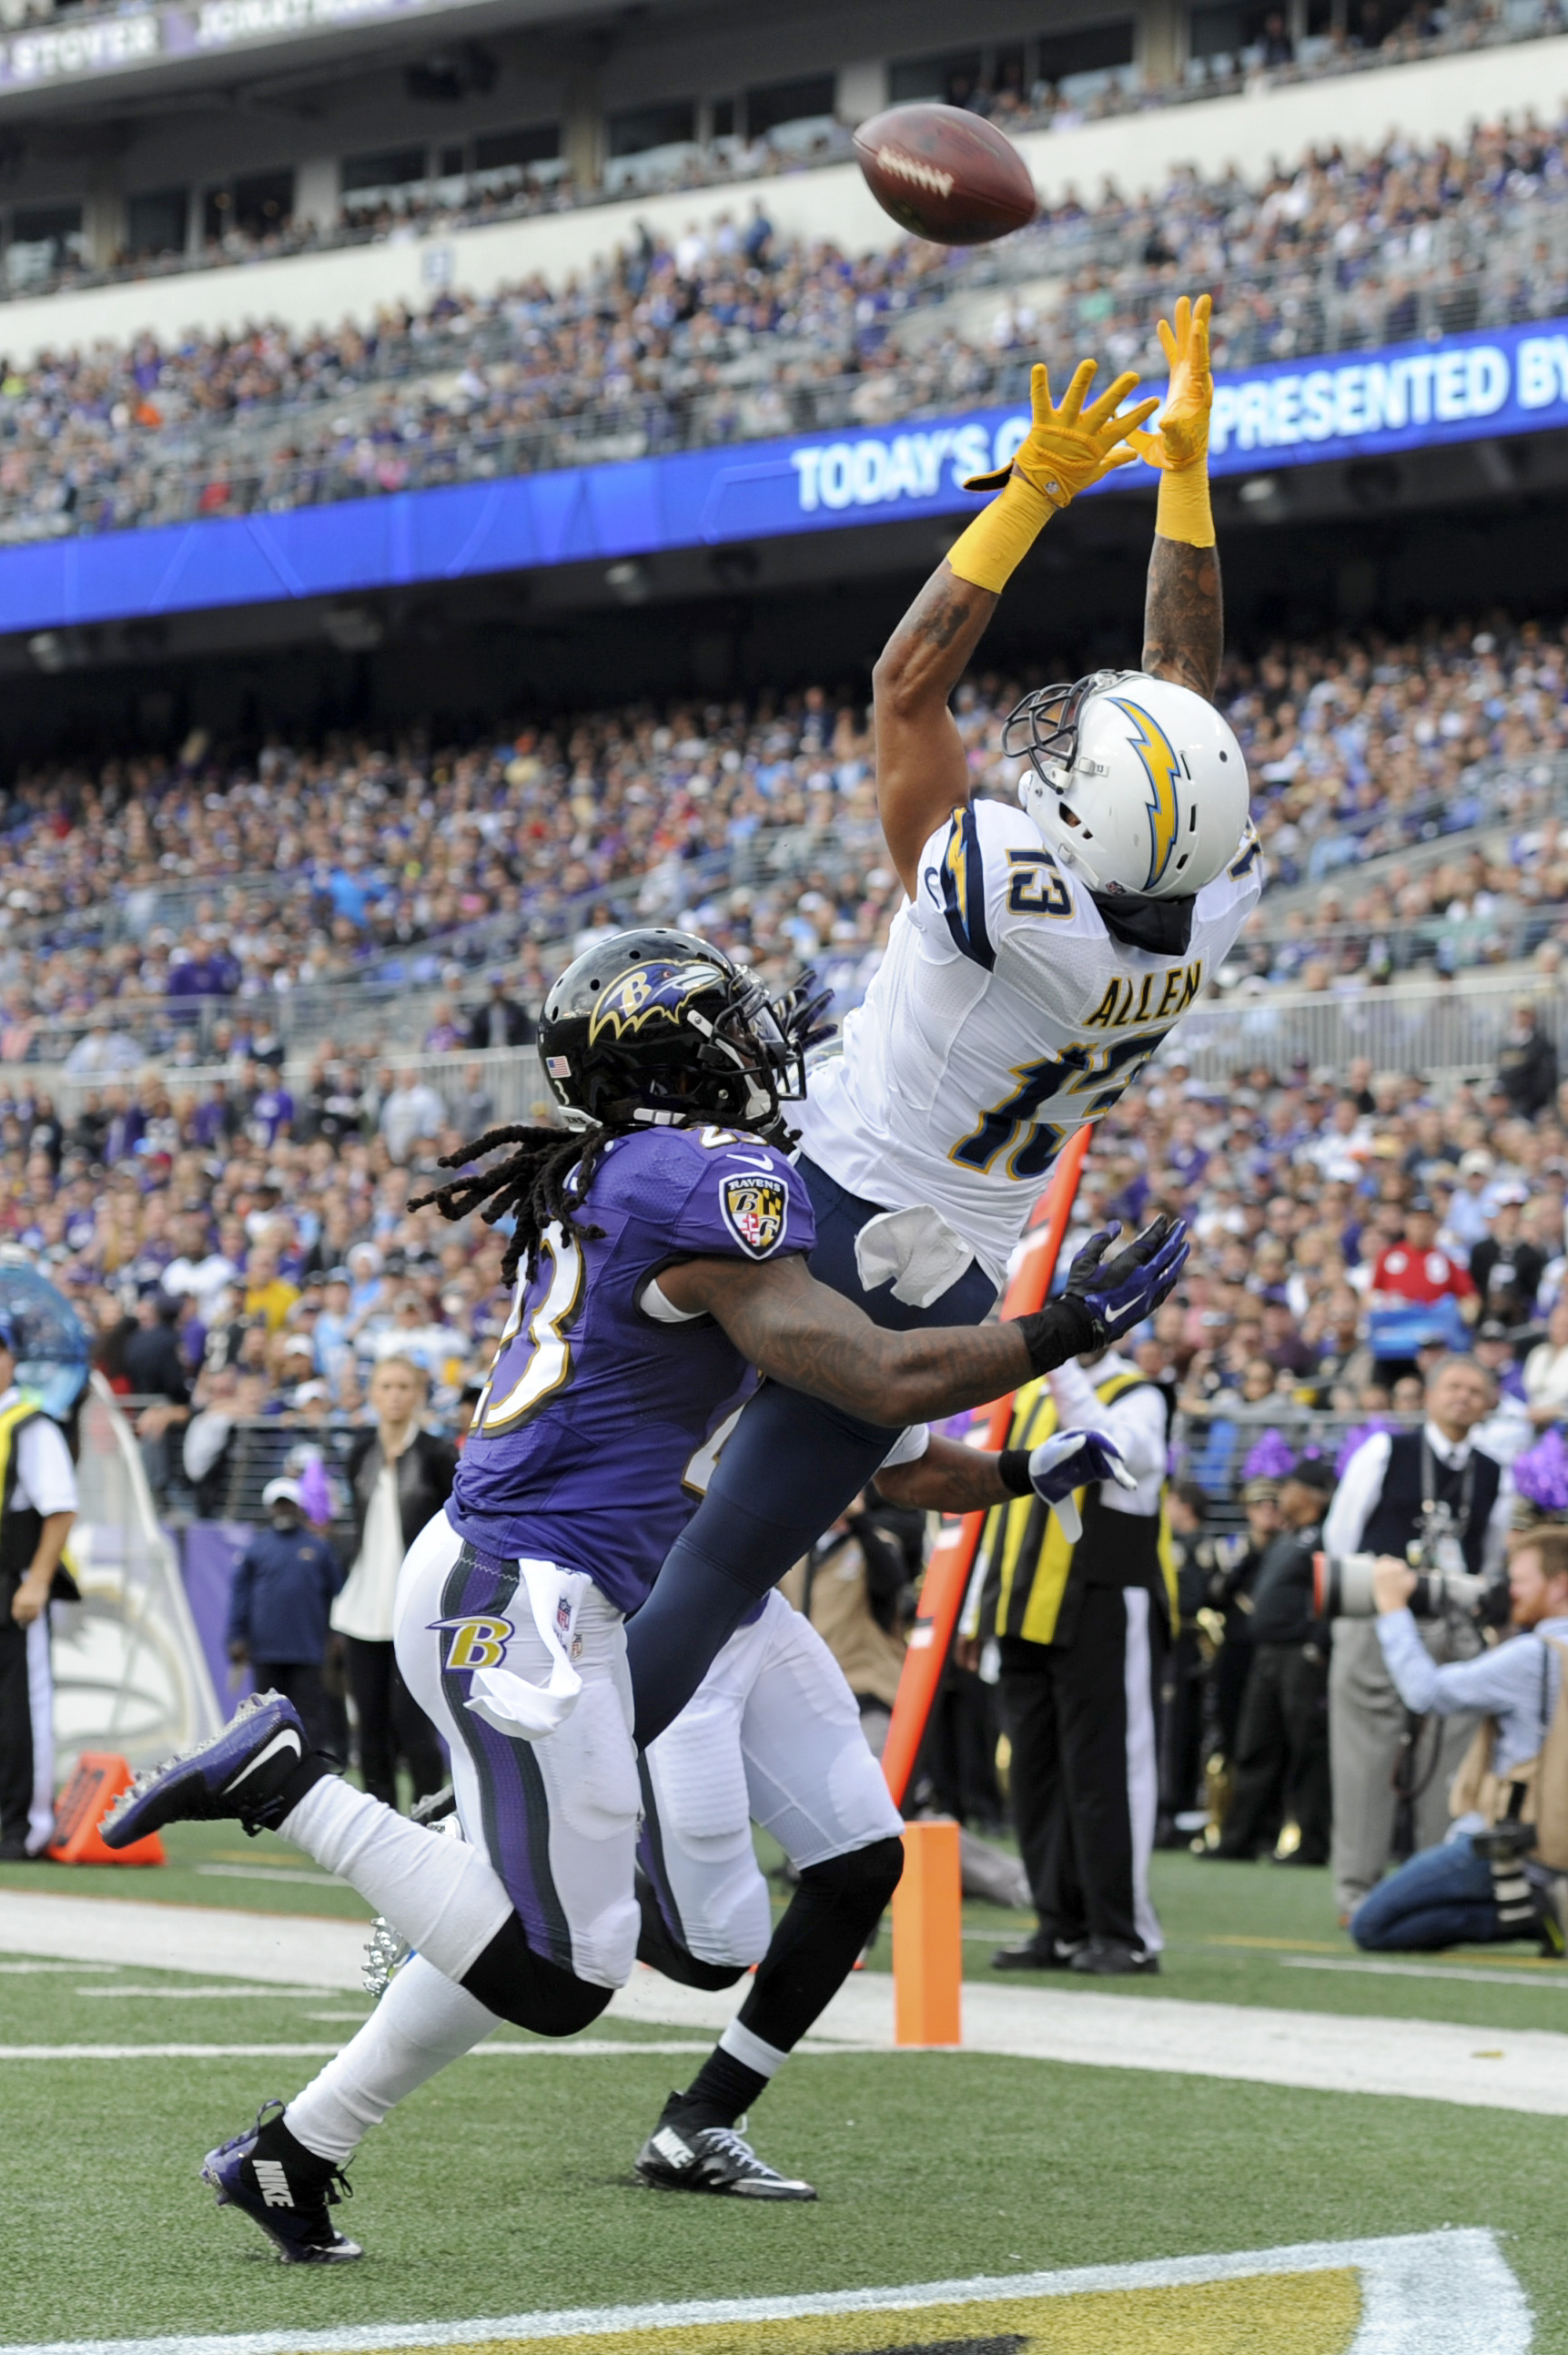 San Diego Chargers wide receiver Keenan Allen (13) pulls in a touchdown pass under pressure from Baltimore Ravens free safety Kendrick Lewis (23) during the first half of an NFL football game in Baltimore, Sunday, Nov. 1, 2015. (AP Photo/Gail Burton)